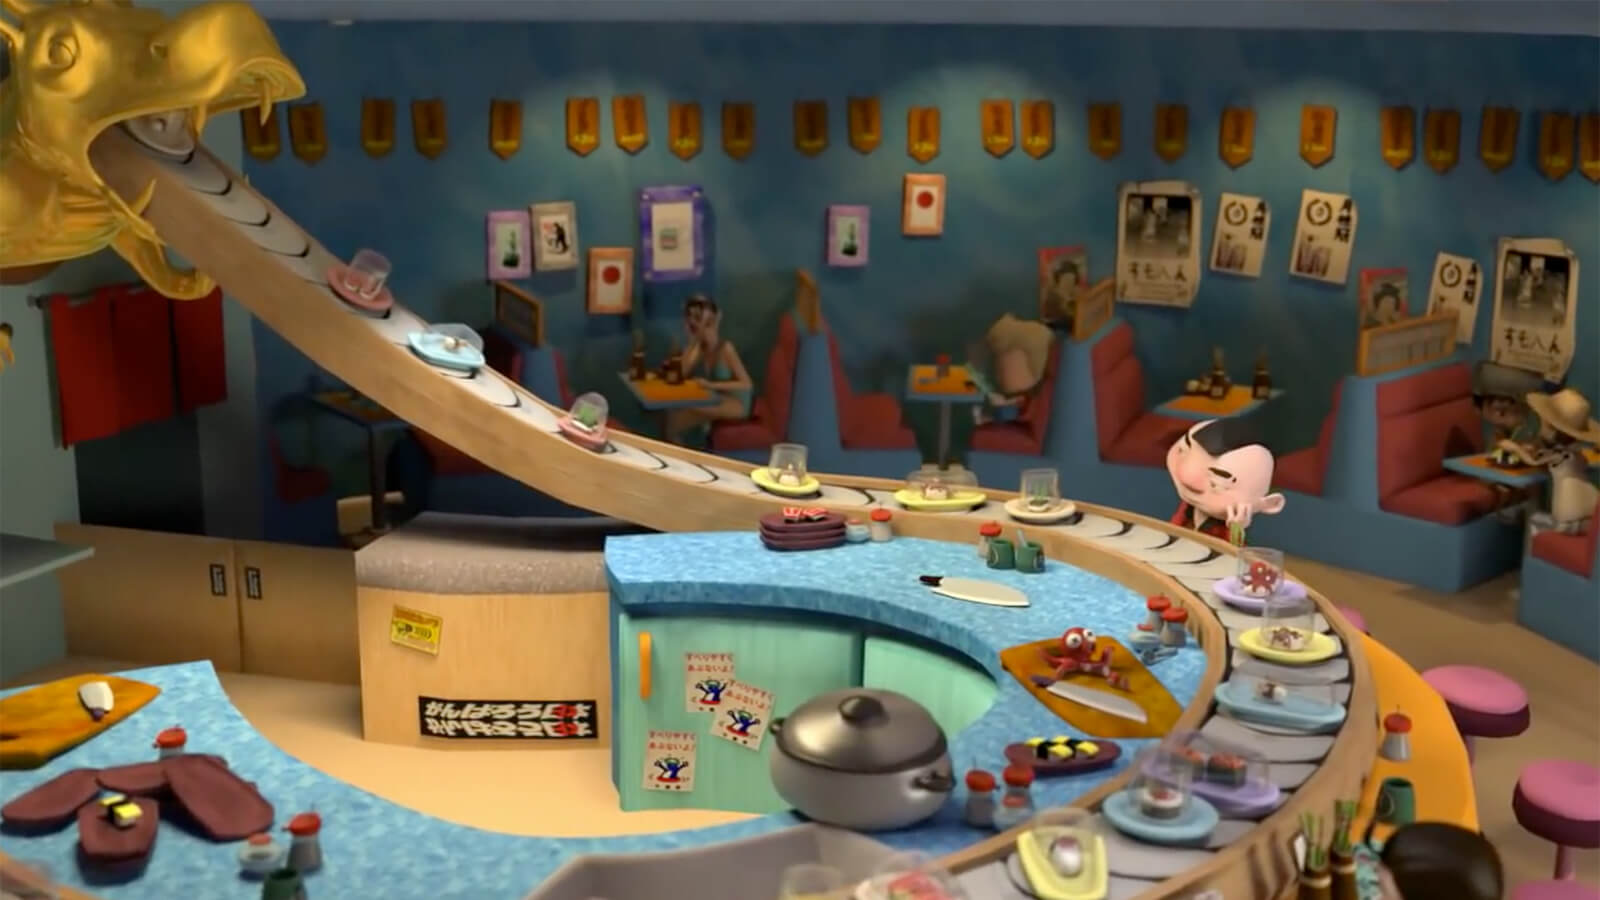 In a colorful CG animated scene, a short, bored man stares at incoming plates at a conveyor sushi restaurant.